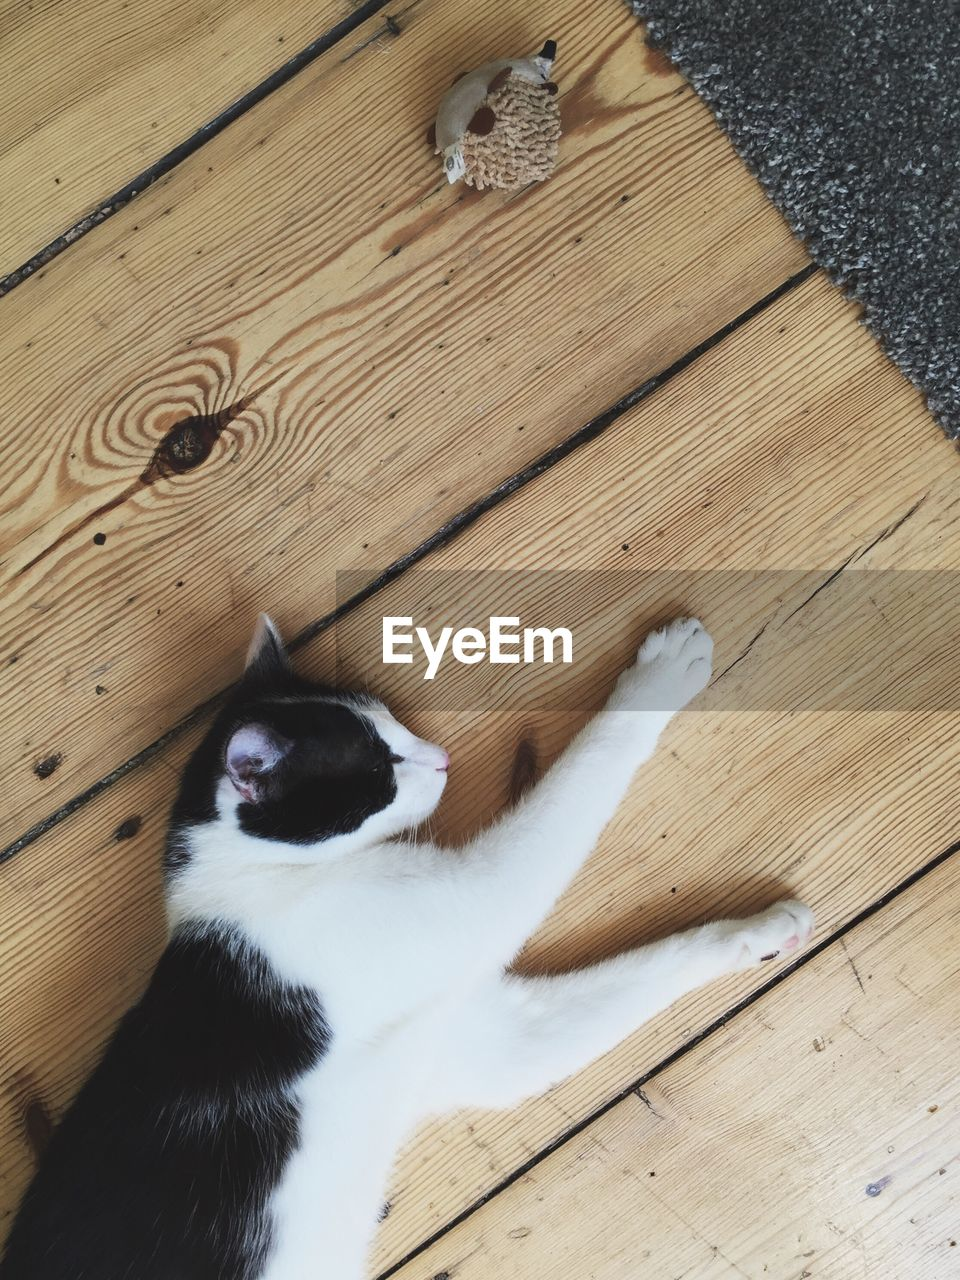 High Angle View Of Cat On Wood